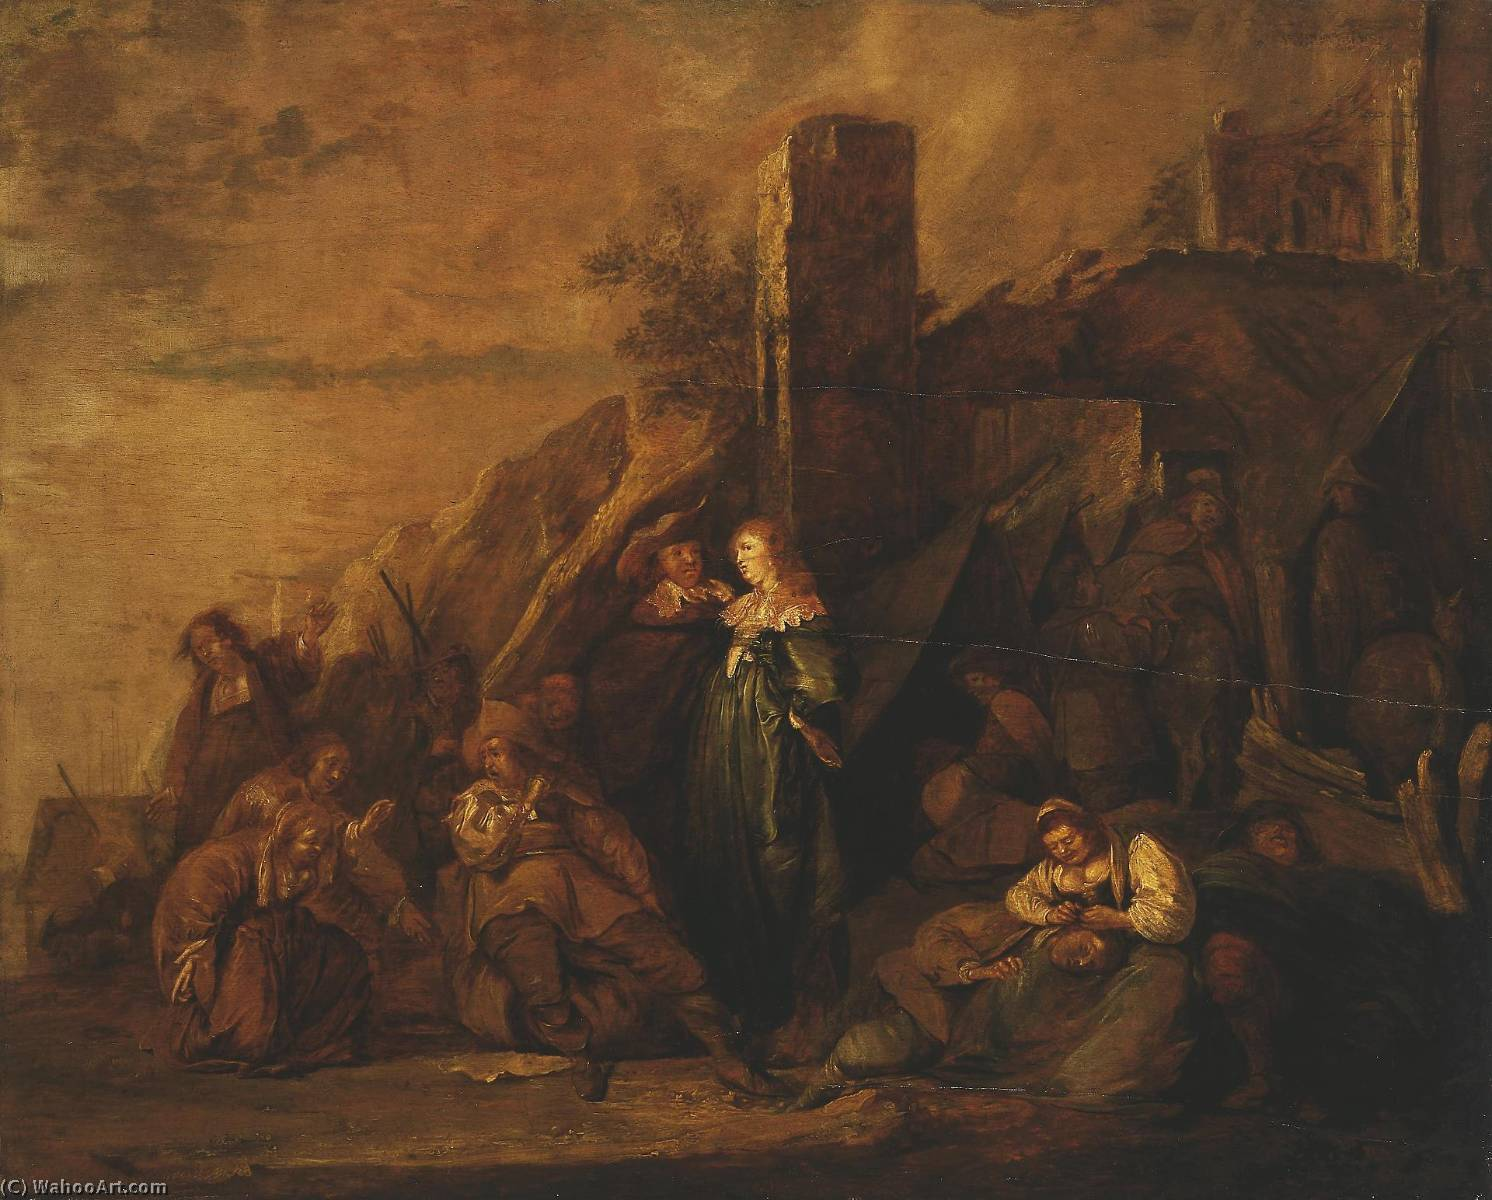 Order Reproductions | Halt of Travellers Among Ruins, 1649 by Pieter Jacobs Codde (1599-1678) | WahooArt.com